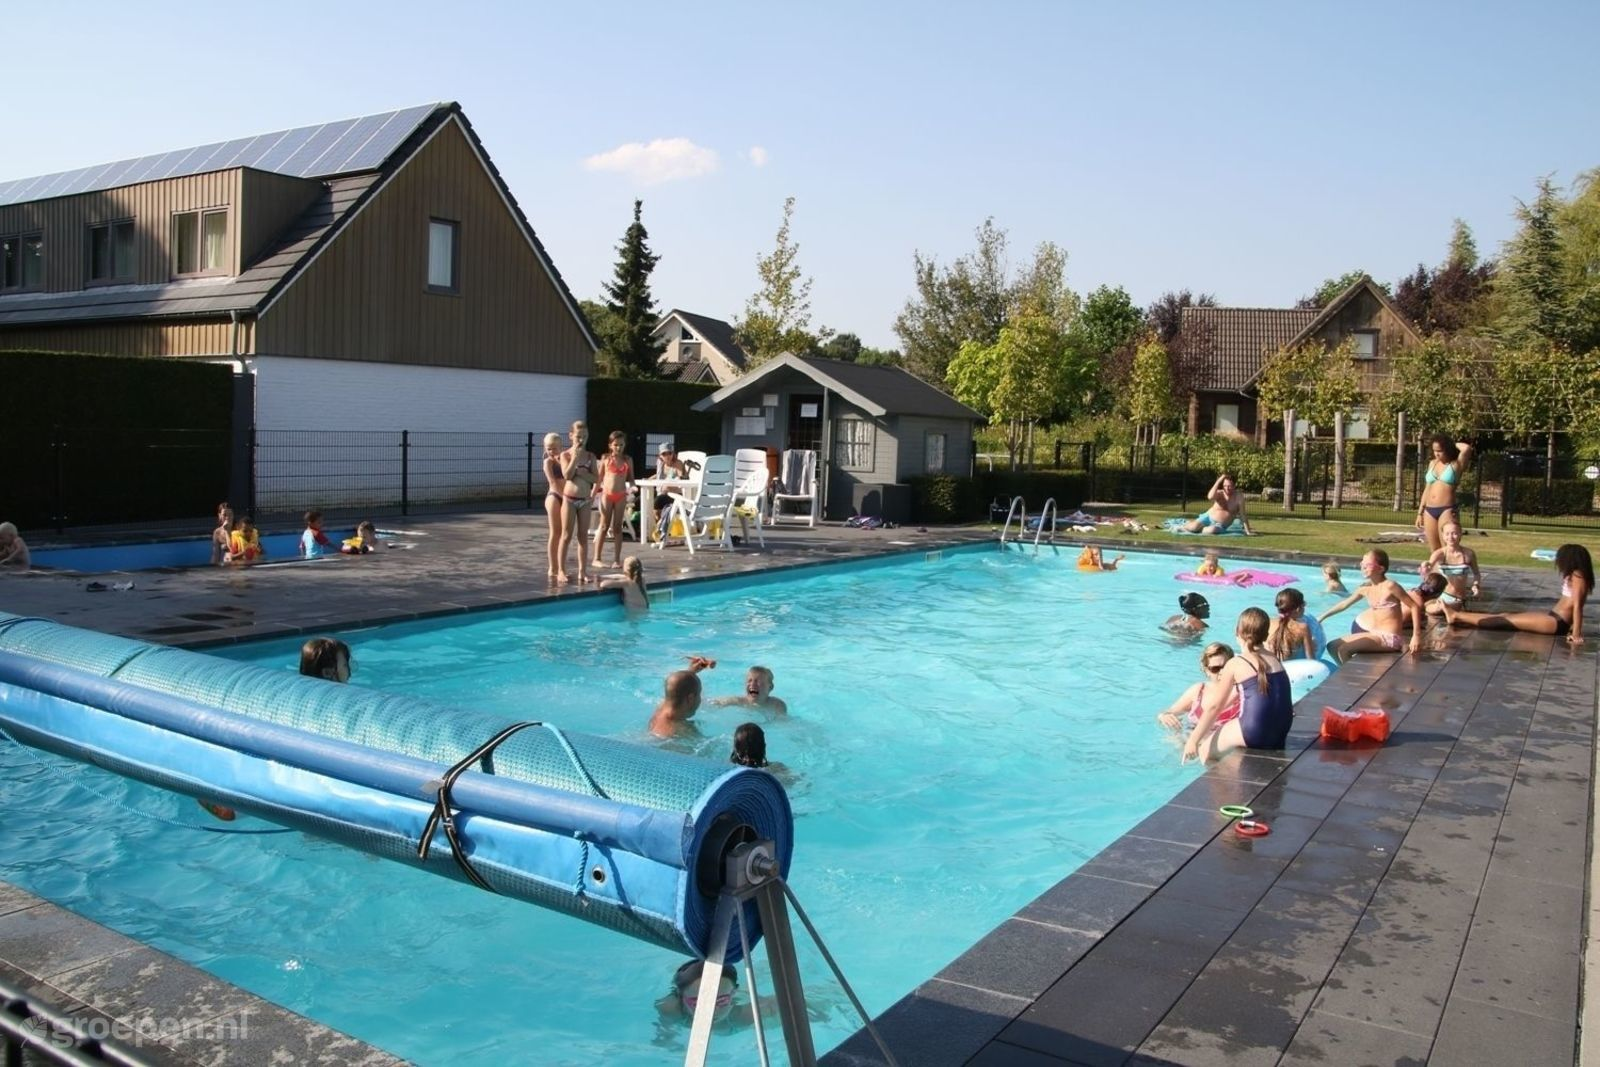 De Slag Zwembad Zaandam Group Accommodation In Klimmen Limburg 24 Guests Groepen Co Uk